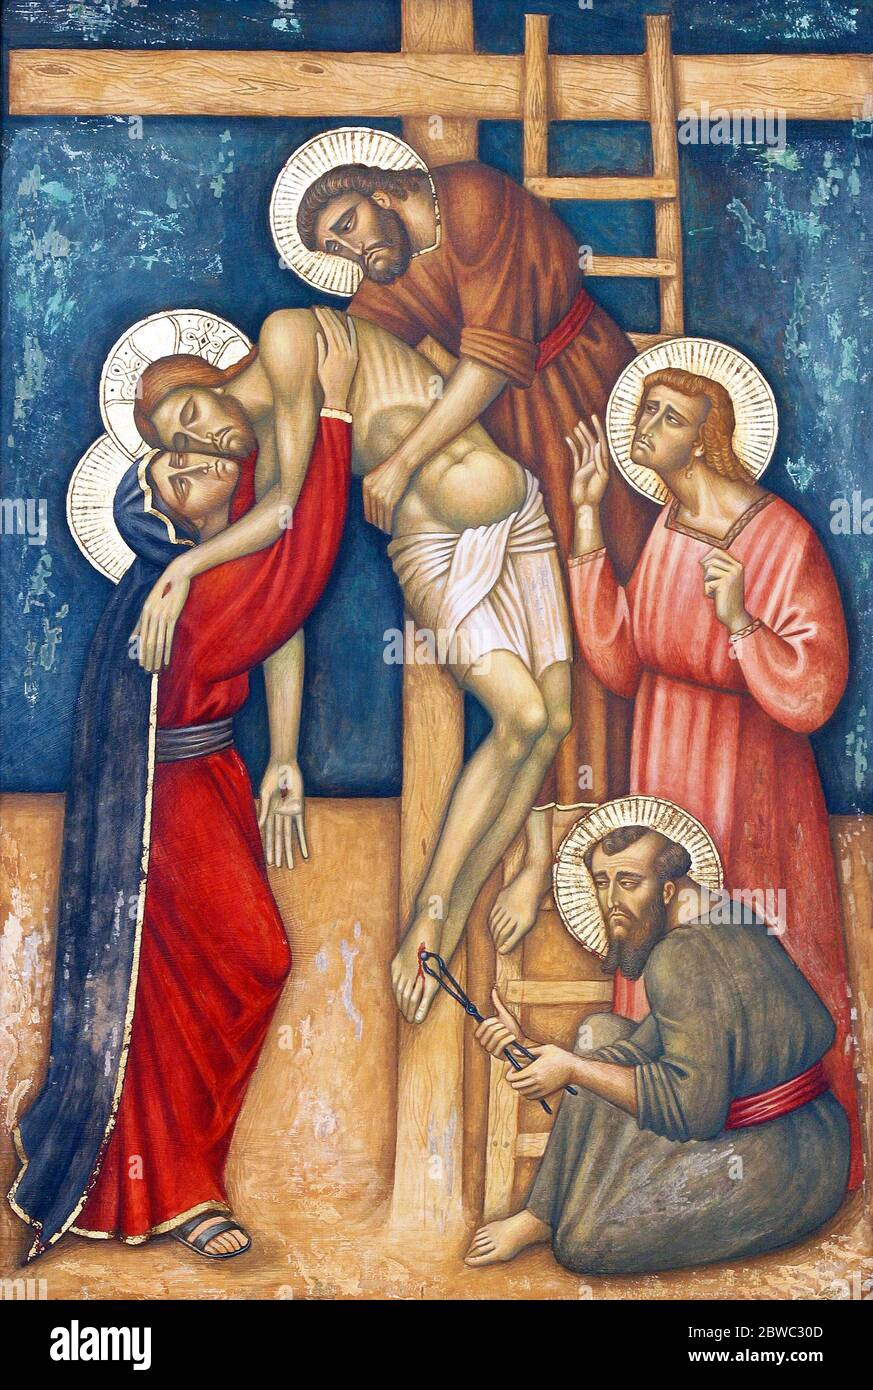 13th Stations Of The Cross Jesus Body Is Removed From The Cross Parish Church Of The Precious Blood Of Jesus In Zagreb Croatia Stock Photo Alamy